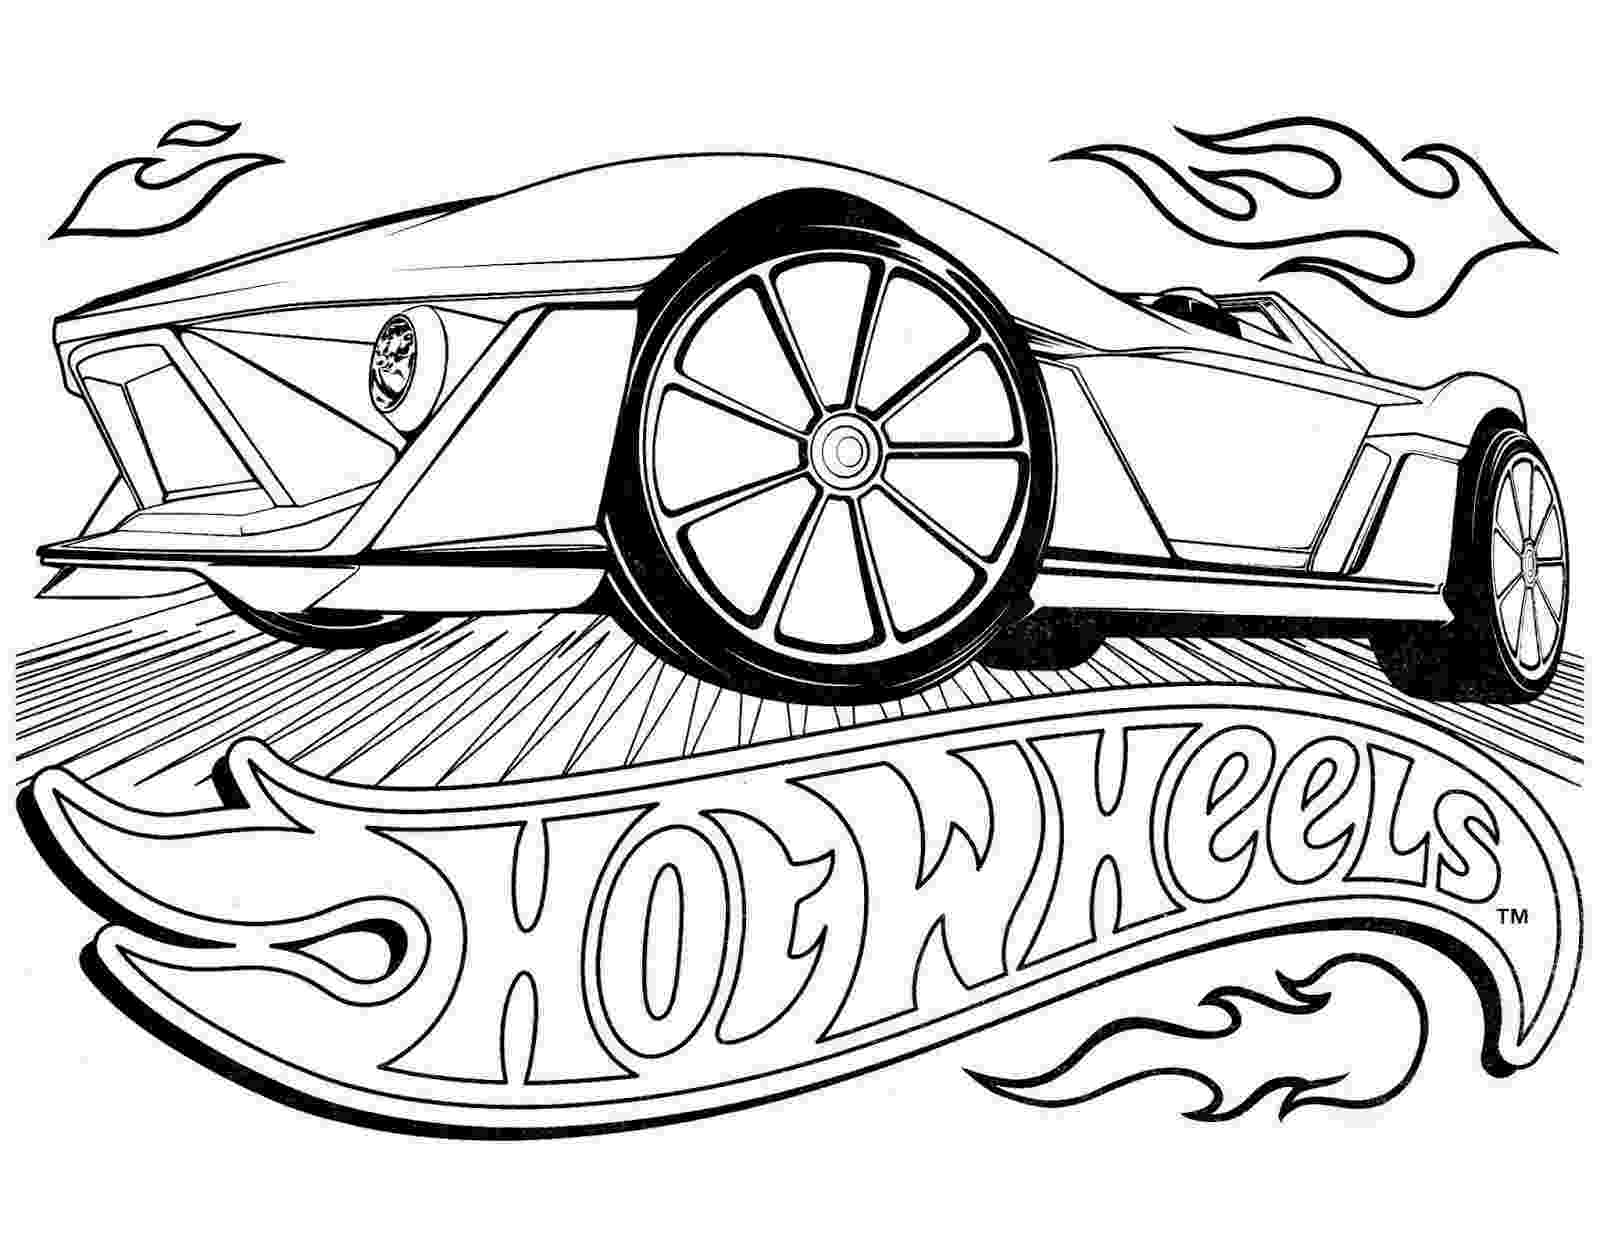 hot wheels images to print hot wheels printable coloring pages hot wheels 2 in 2020 to hot wheels print images